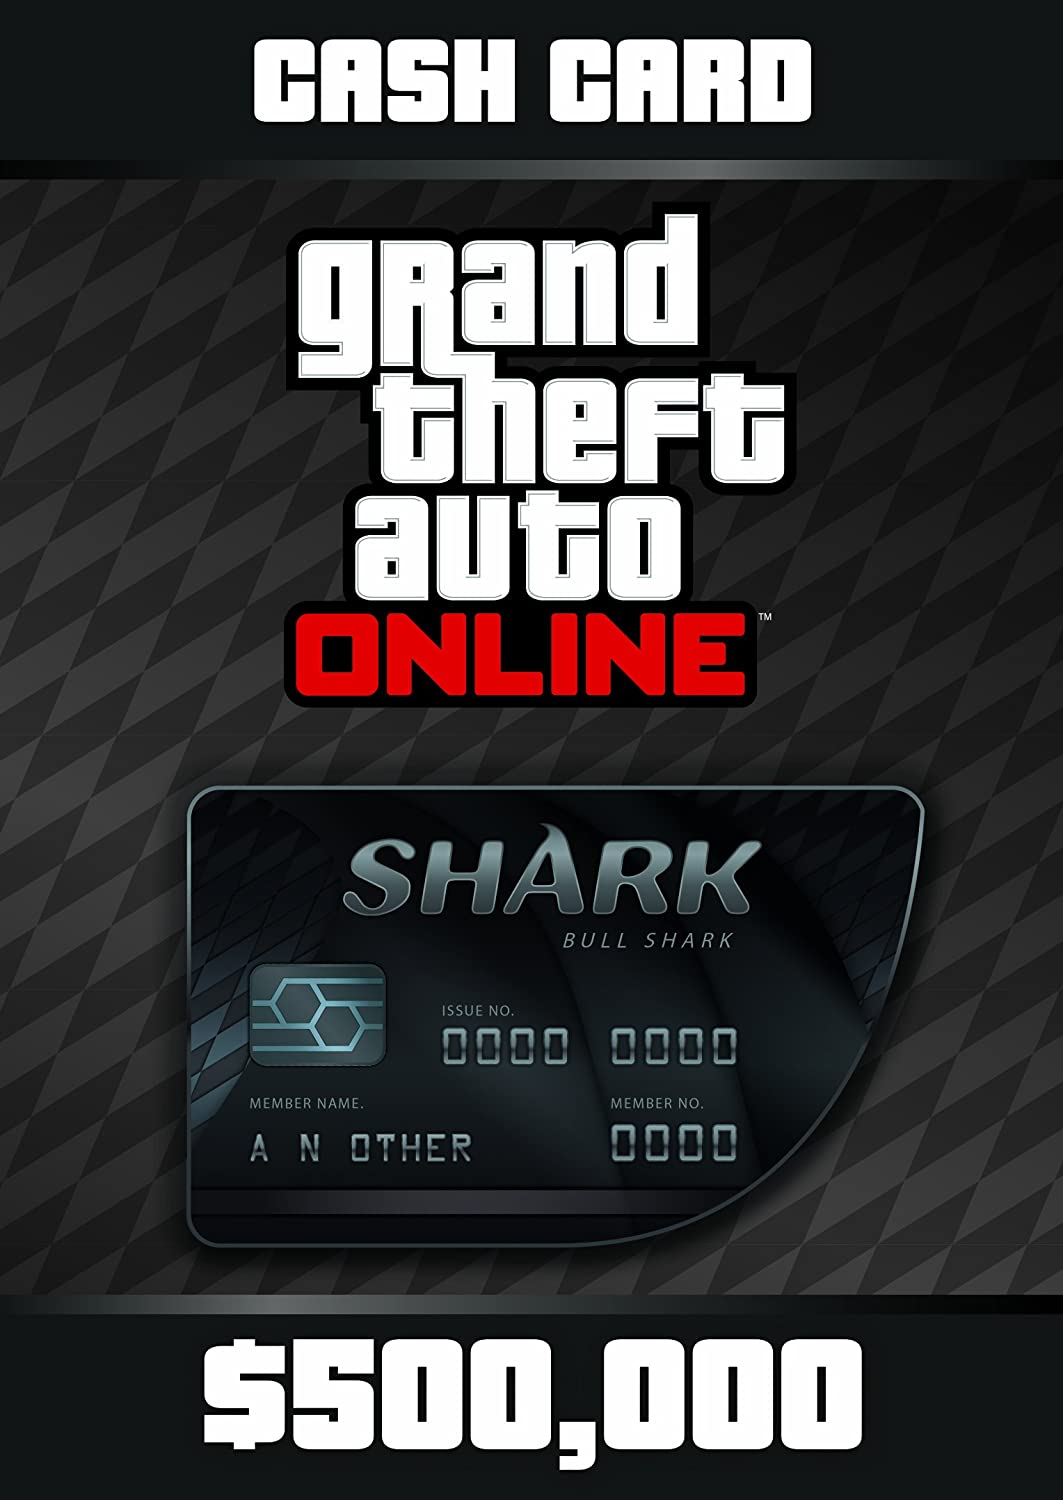 Grand Theft Auto Online: Bull Shark Cash Card - PS3 [Digital Code]